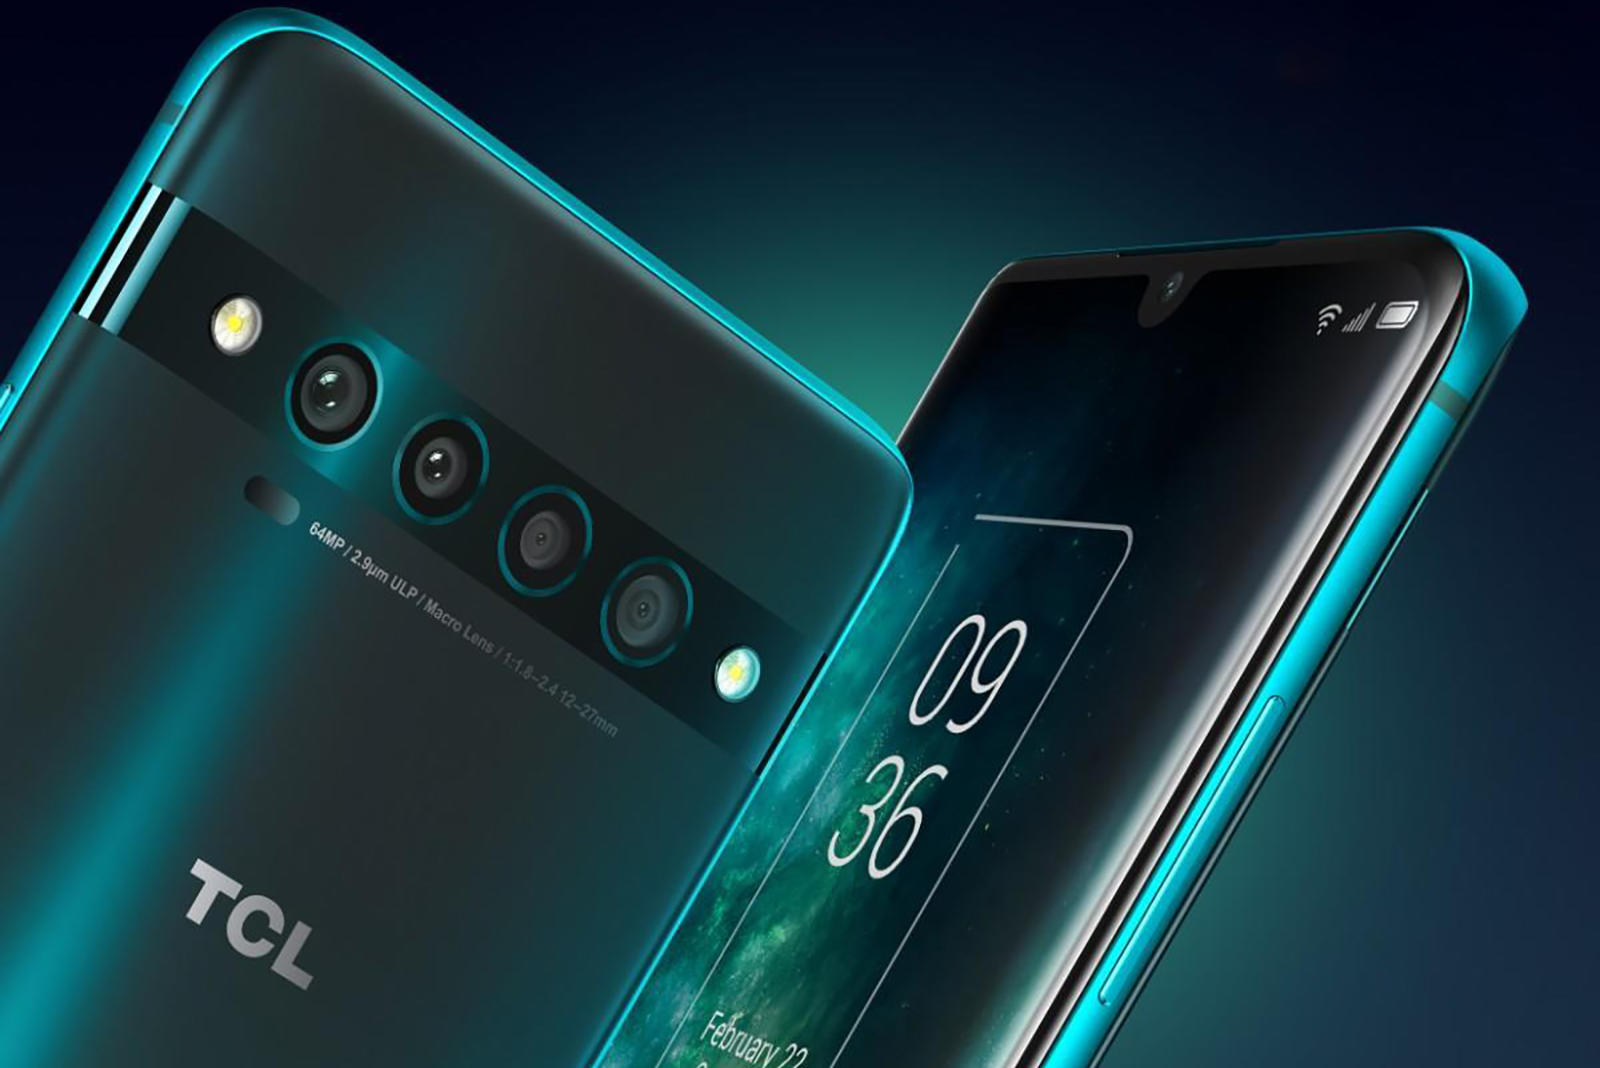 best-android-phone-tcl-10-pro-review.jpg